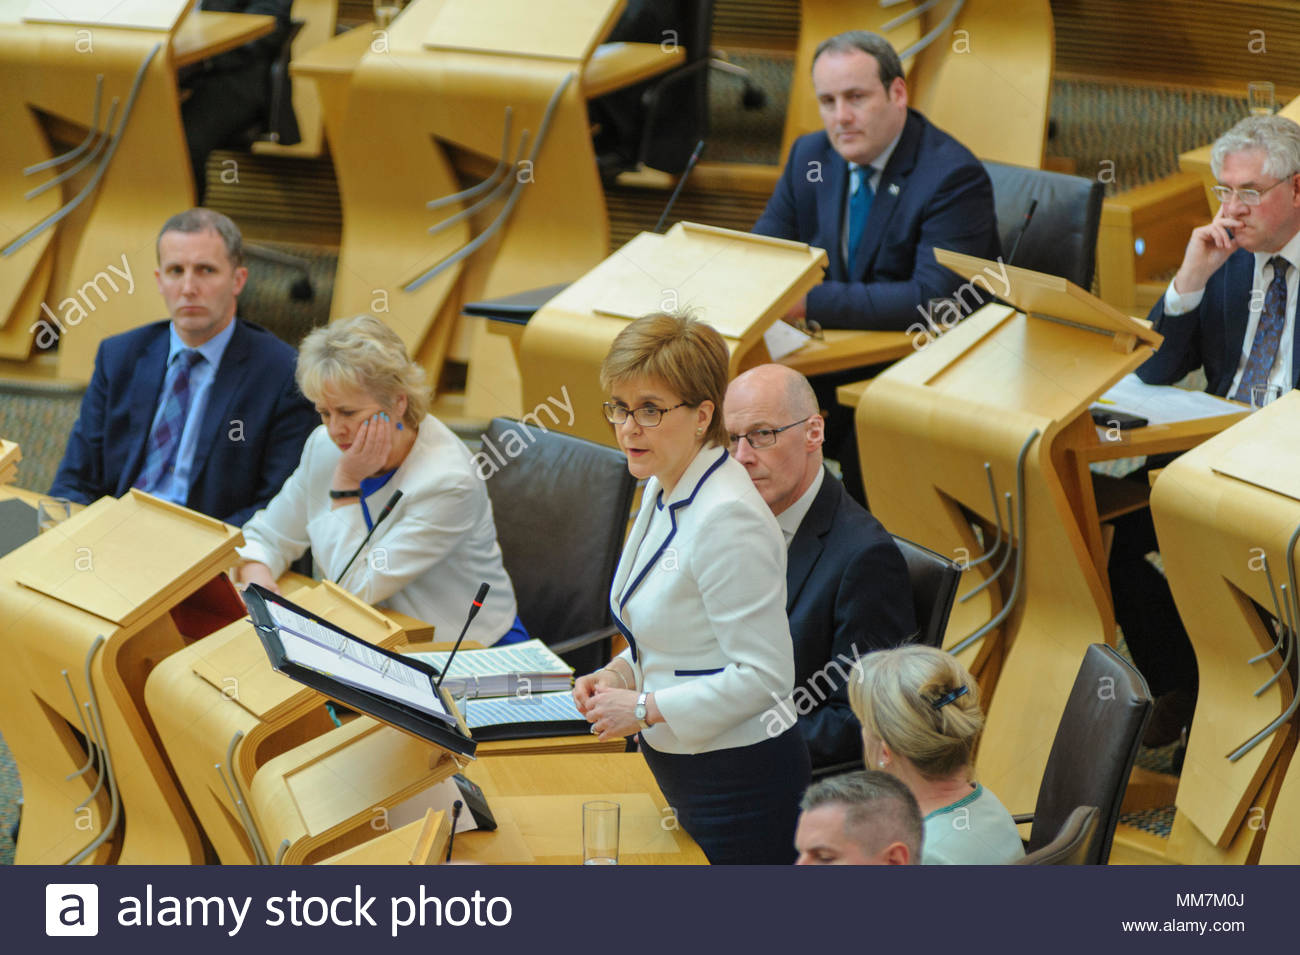 Edinburgh, UK. 10th May, 2018.   Nicola Sturgeon speaking during First Ministers Questions in the Scottish Parliament . Photo: Roger Gaisford/Alamy Live News - Stock Image